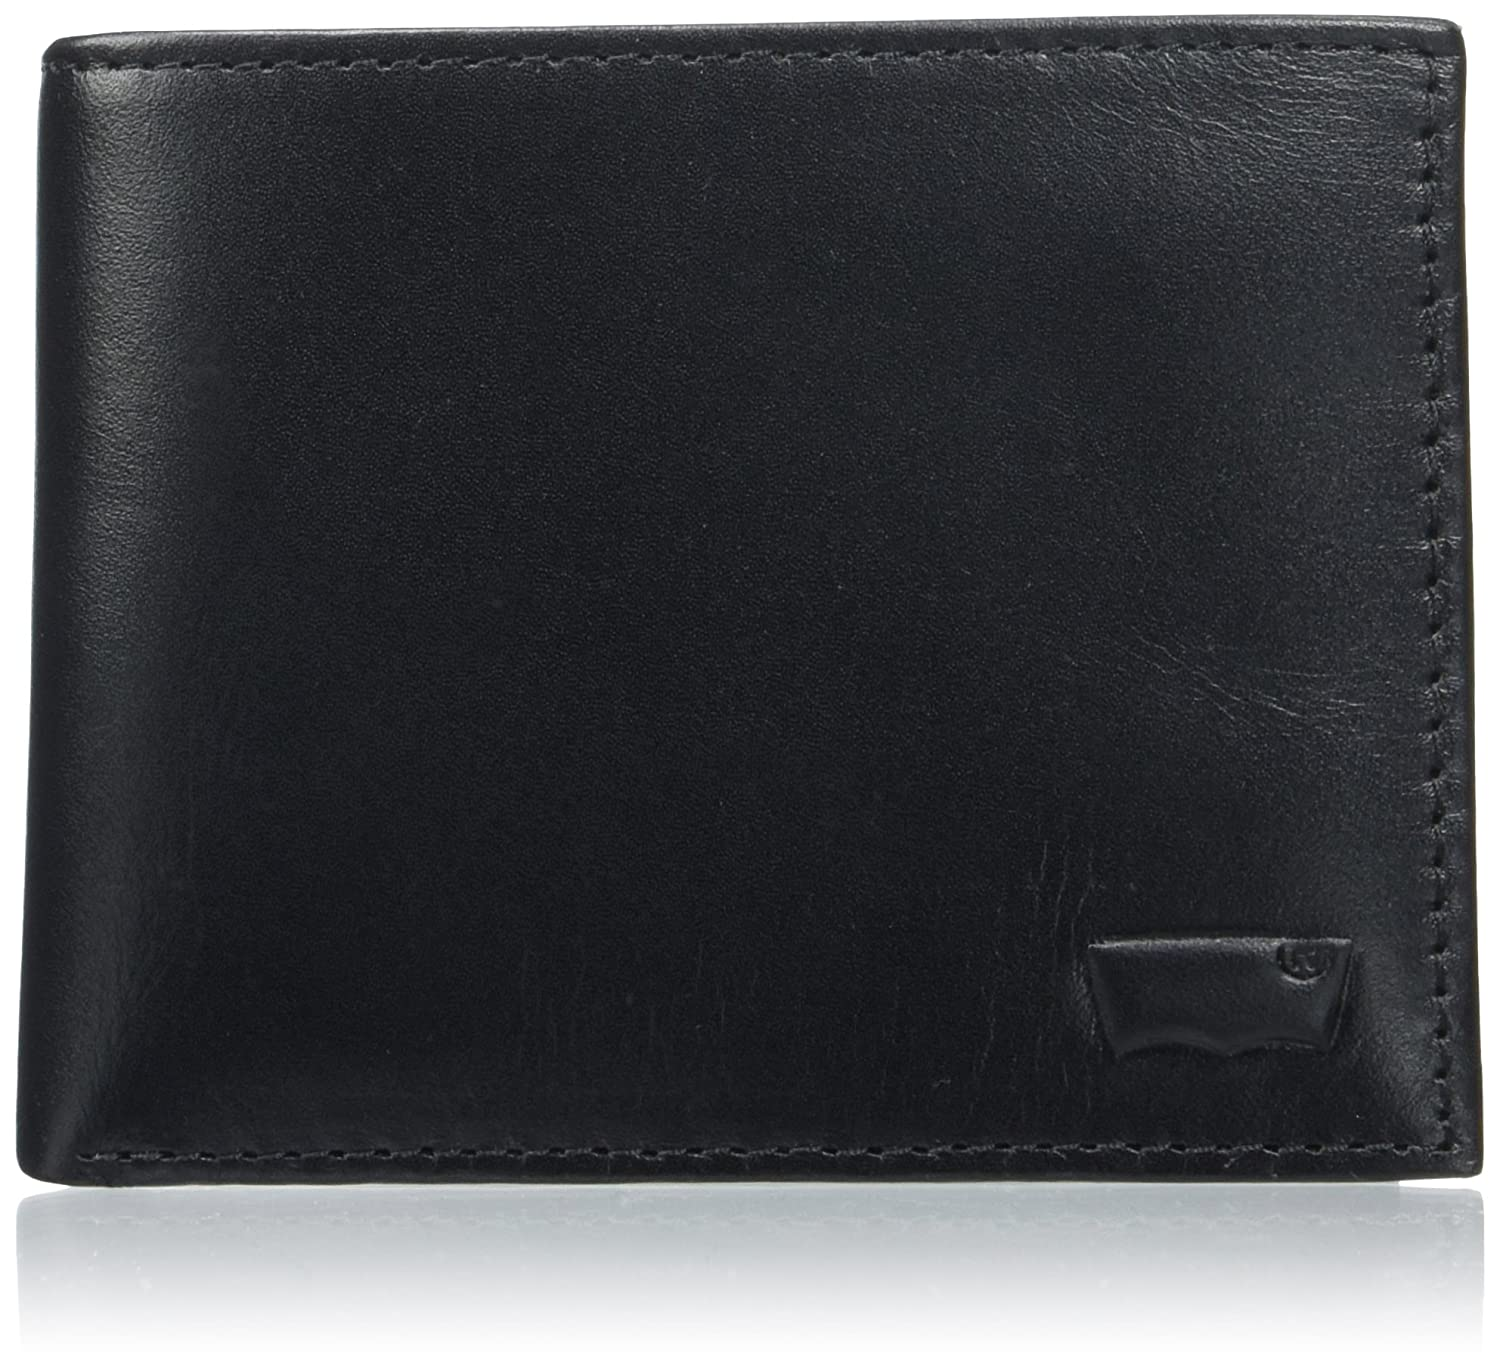 Levis Inlay Bifold with Coin Pocket Wallet porte-monnaie unisexe - Marron (28 Brown) Taille Unique 224667-4